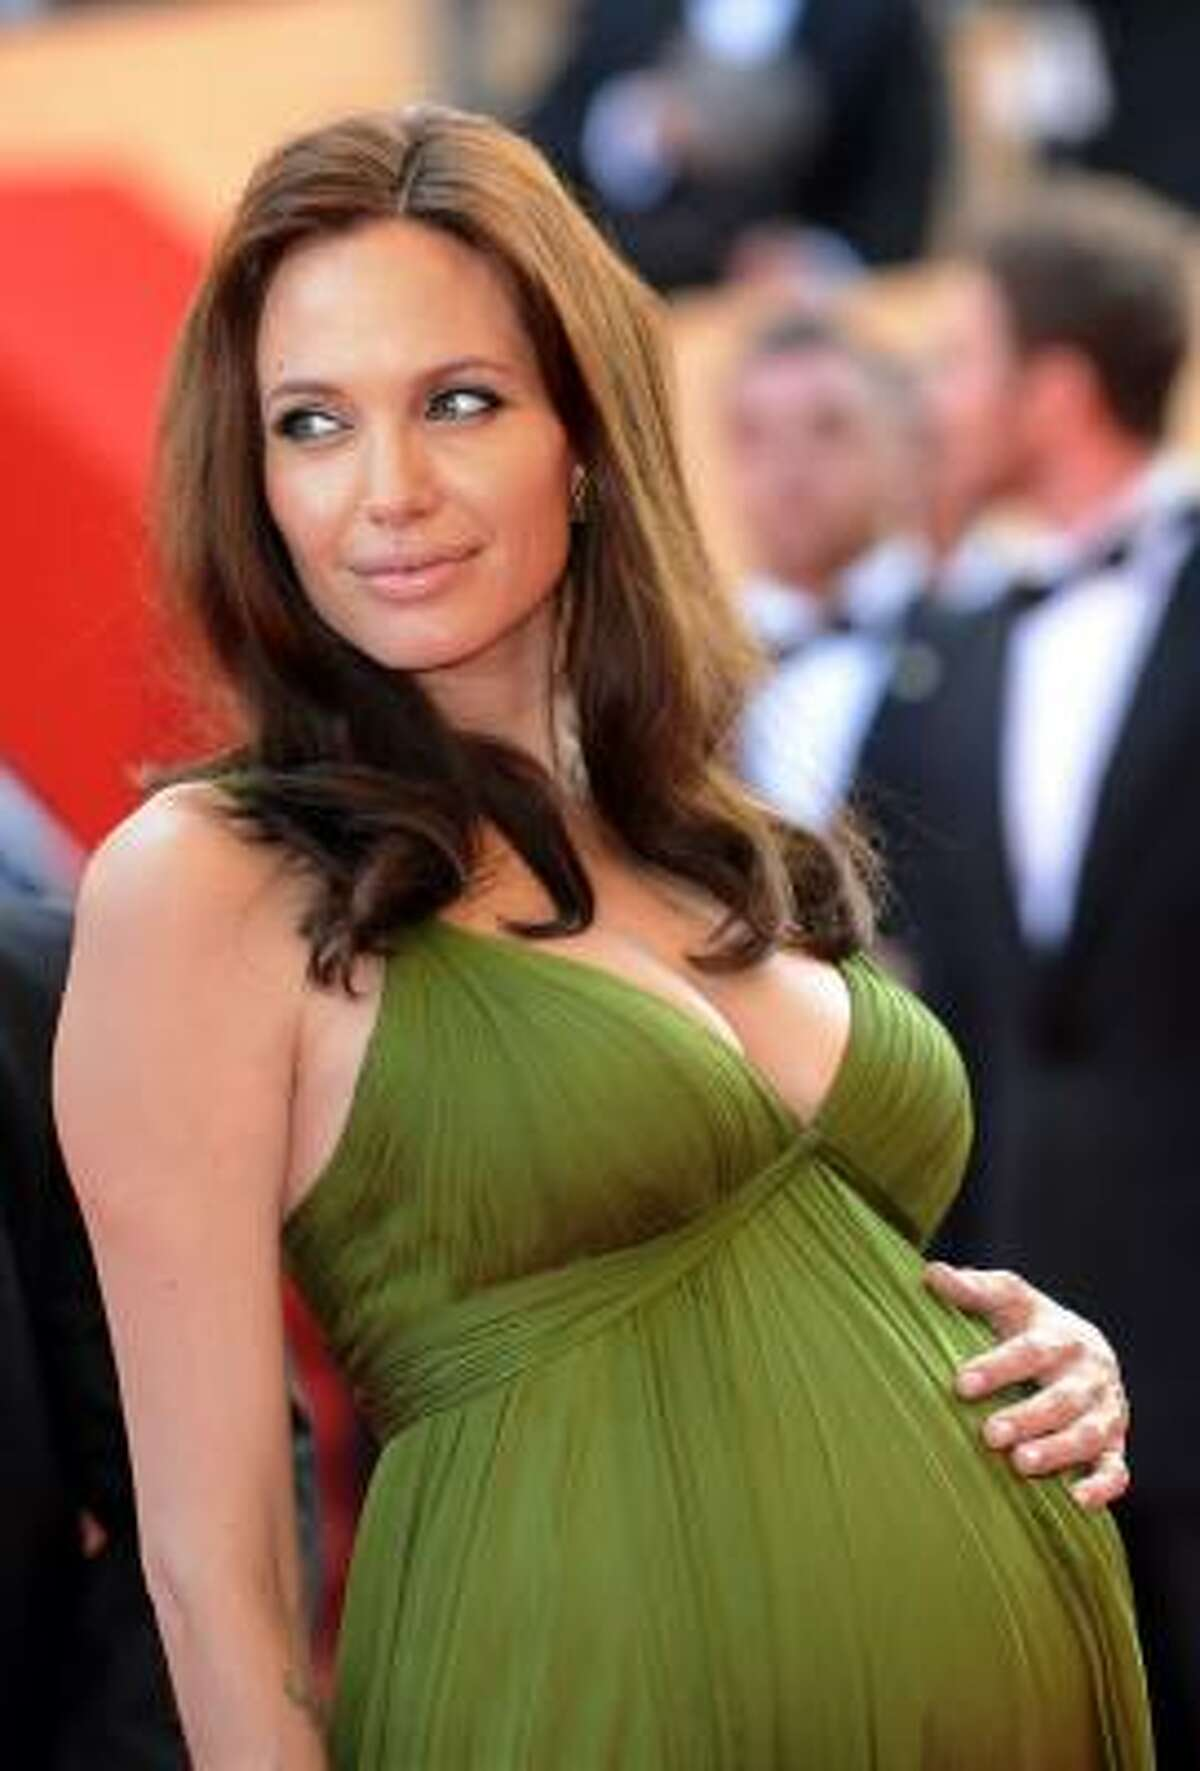 Angelina Jolie looks fabulous while carrying twins. Maternity-wear designer Liz Lange says pregnant women shouldn't be afraid to add color to their wardrobe.